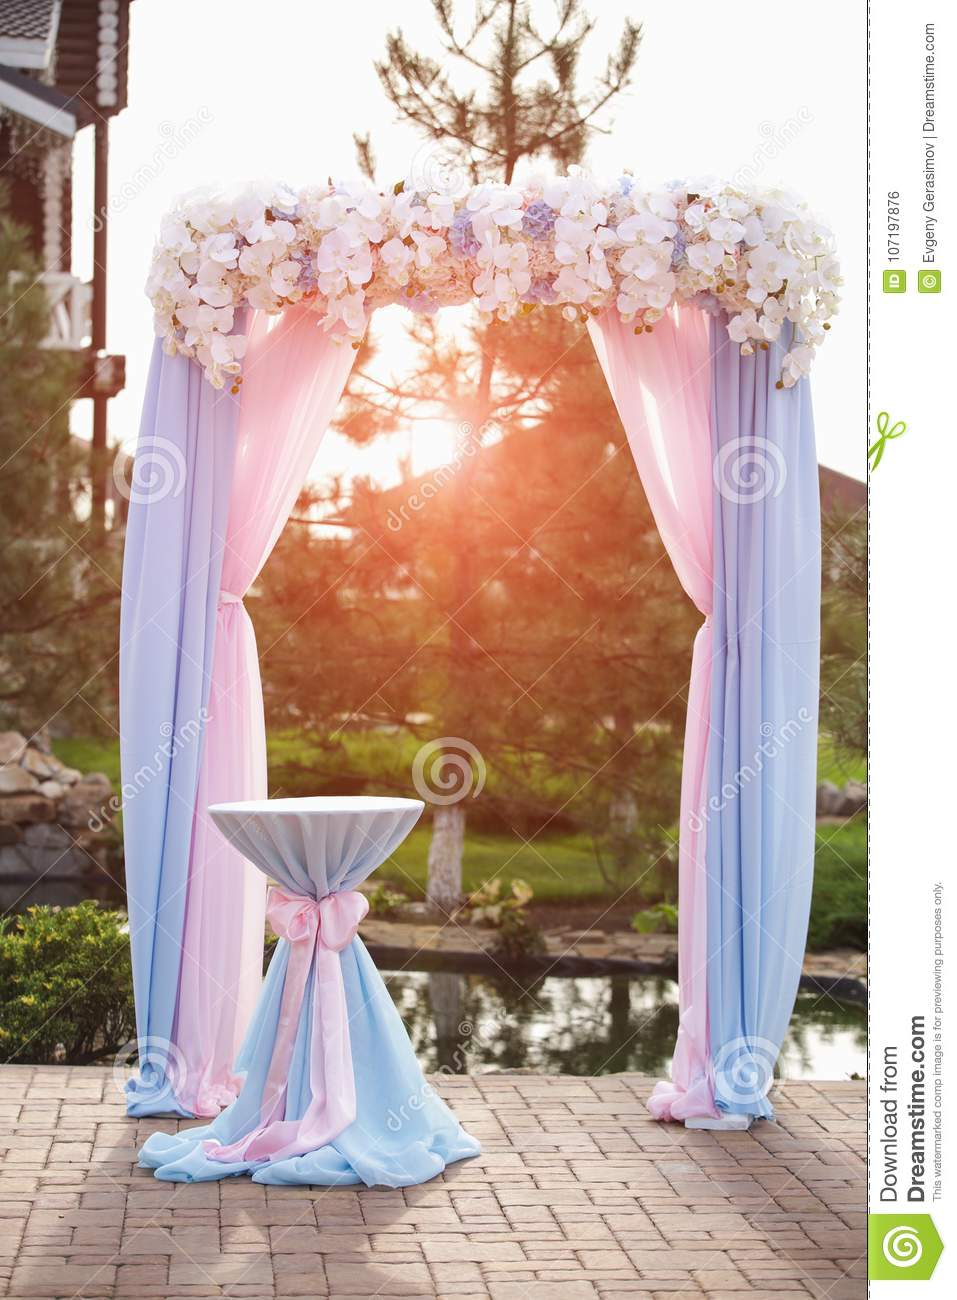 Wedding arch decorated with fresh flowers stock photo image of download wedding arch decorated with fresh flowers stock photo image of wedding elements junglespirit Choice Image